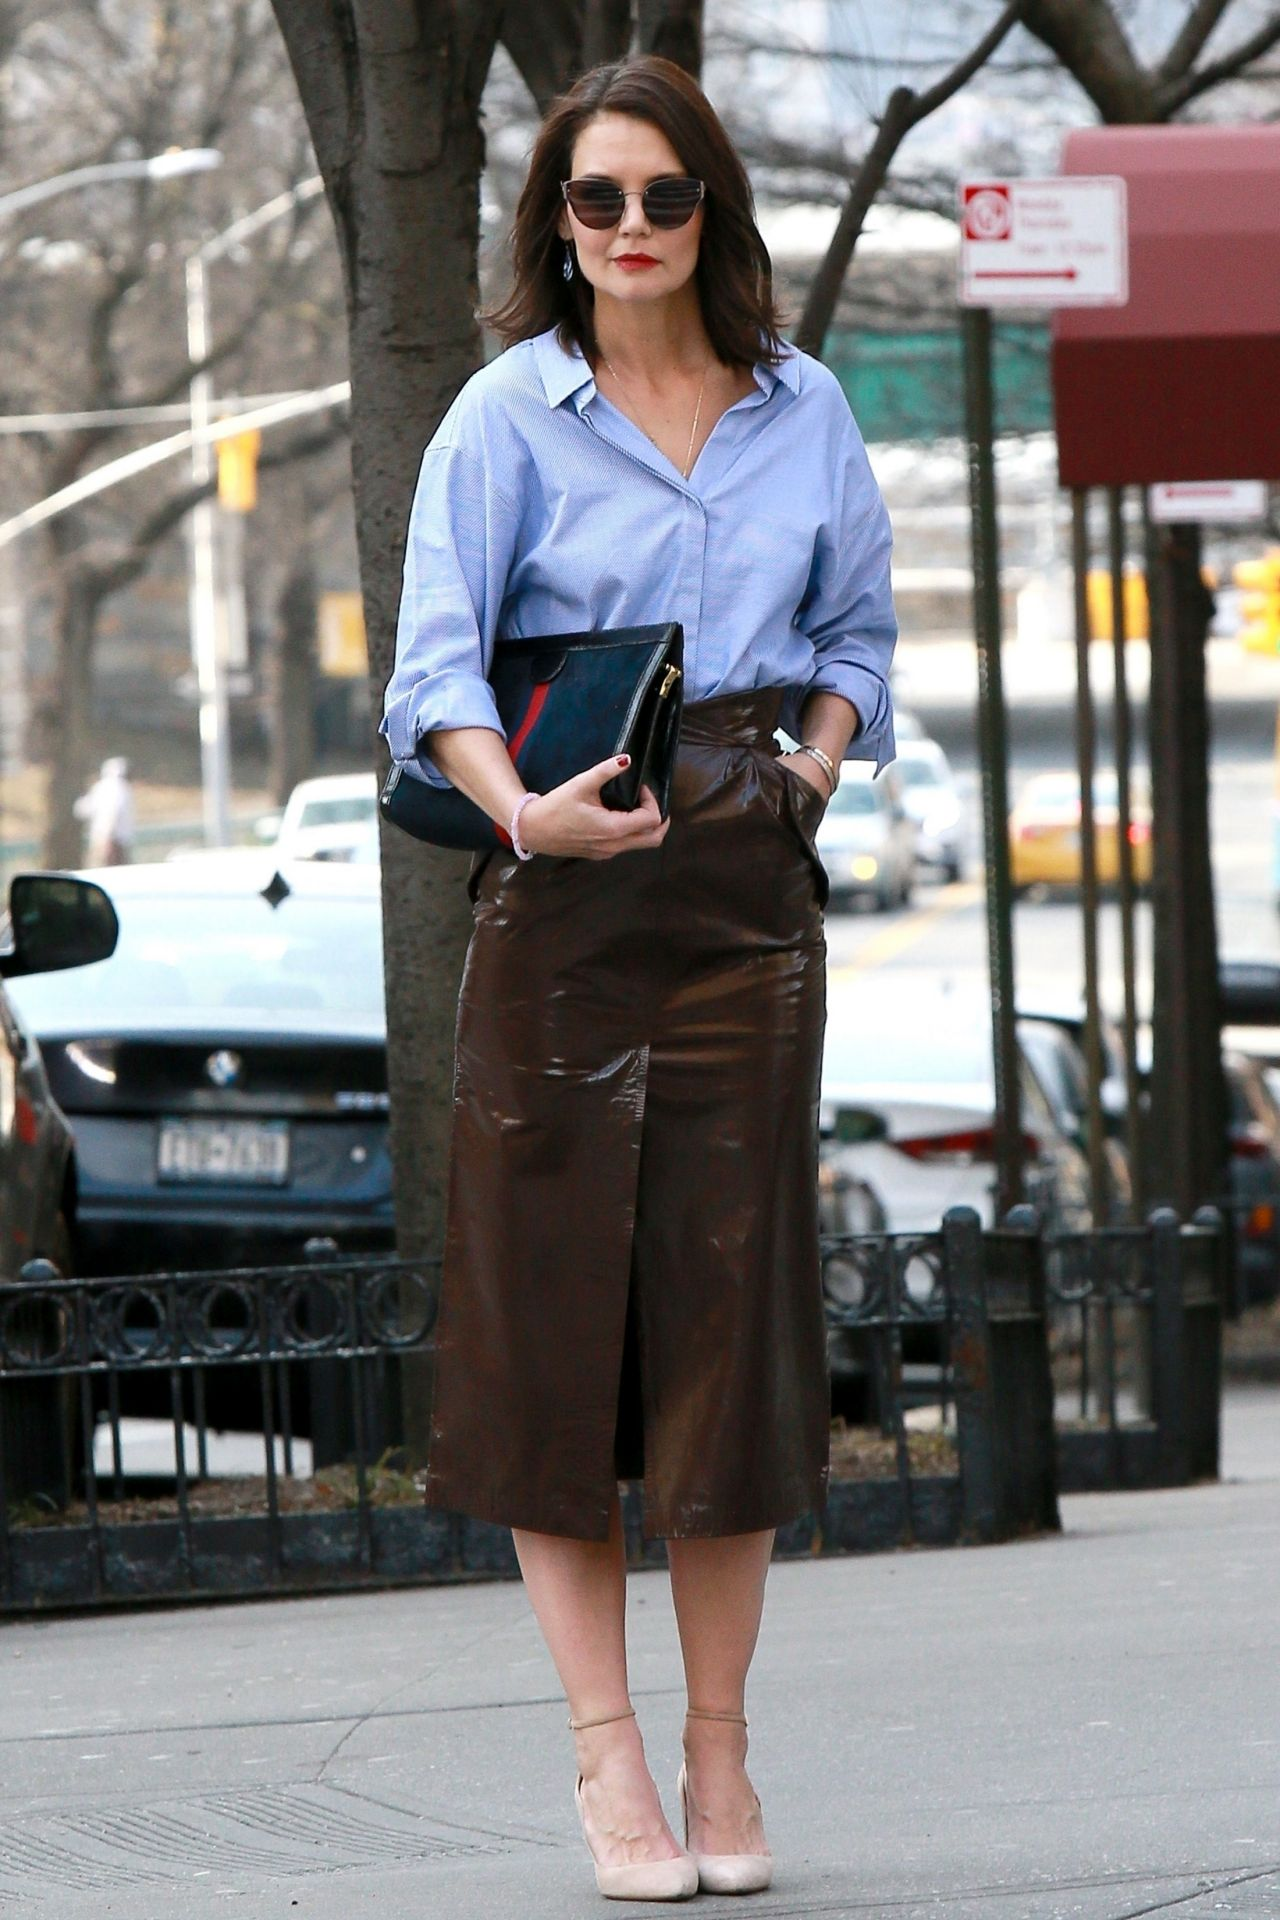 Katie Holmes Is Stylish Out In Nyc 03 14 2019